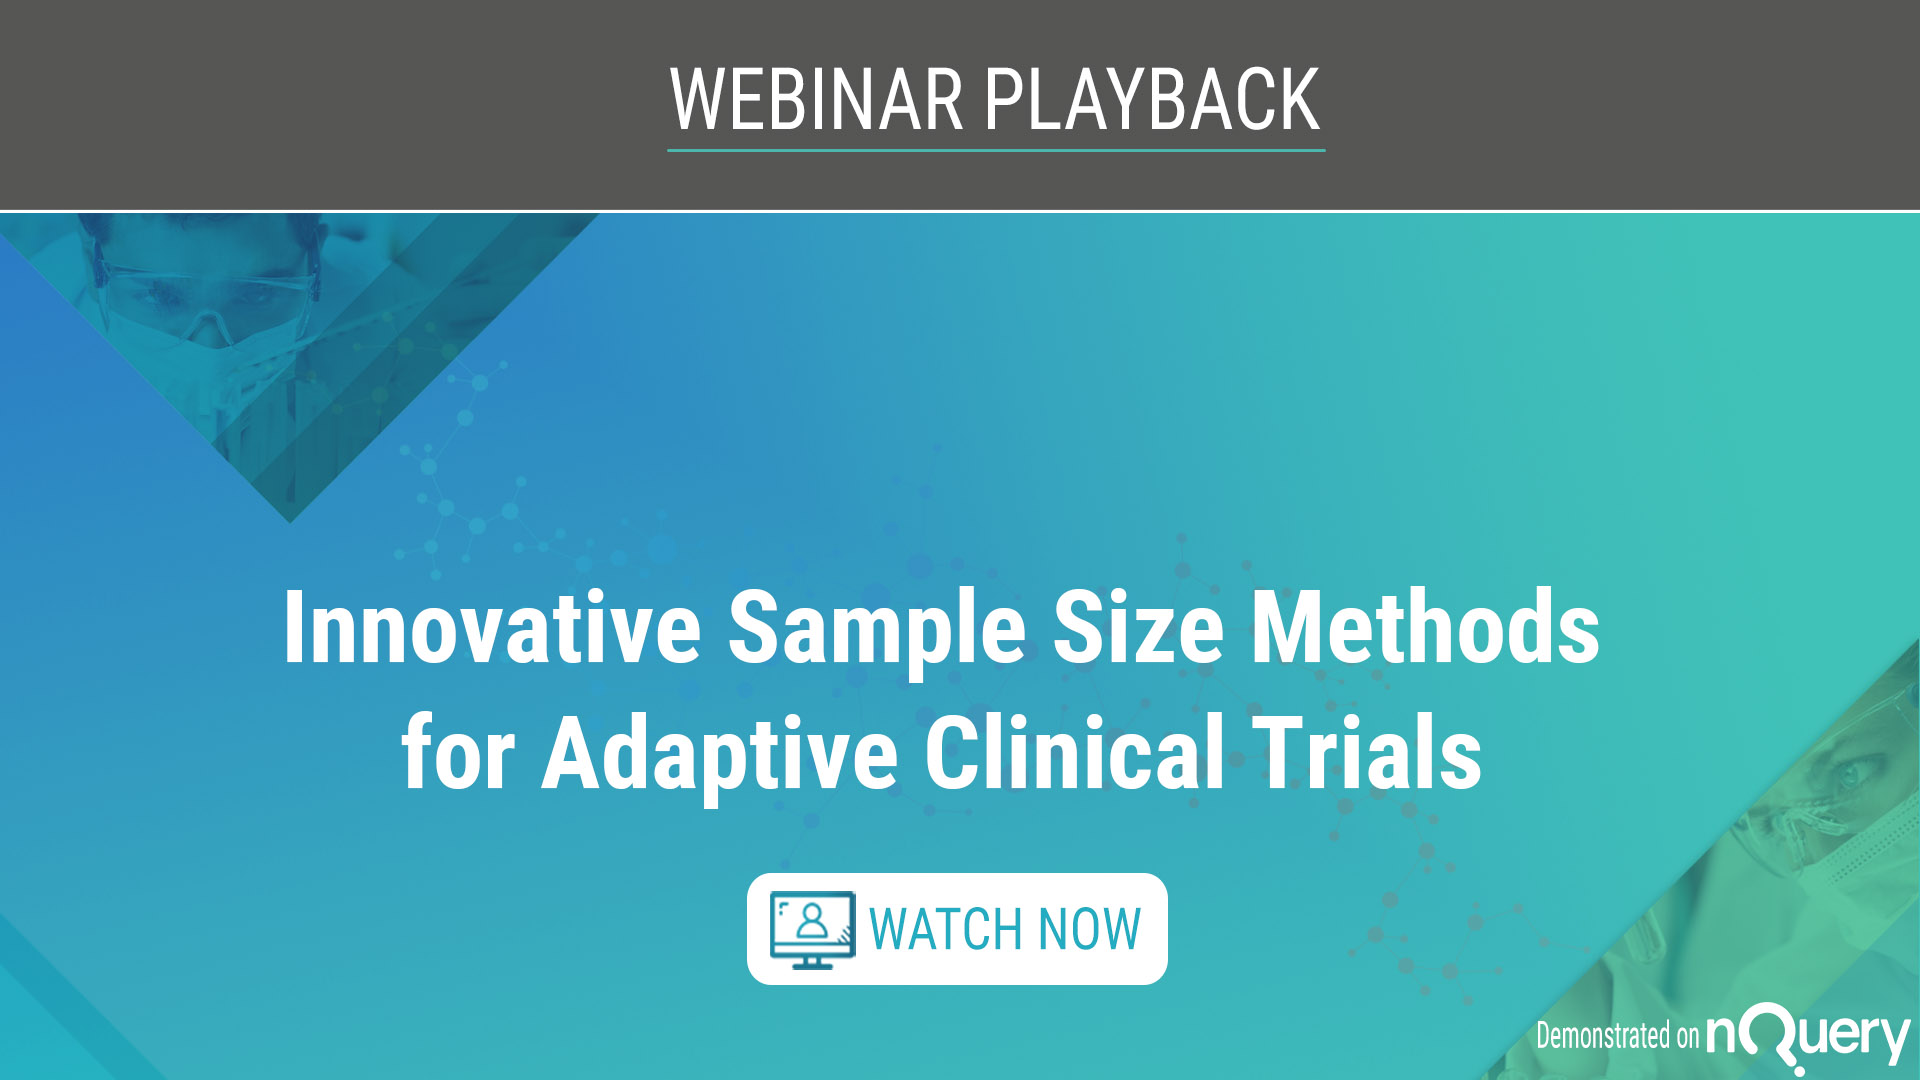 innovative-sample-size-methods-for-adaptive-clinical-trials-on-demand-1920-1080